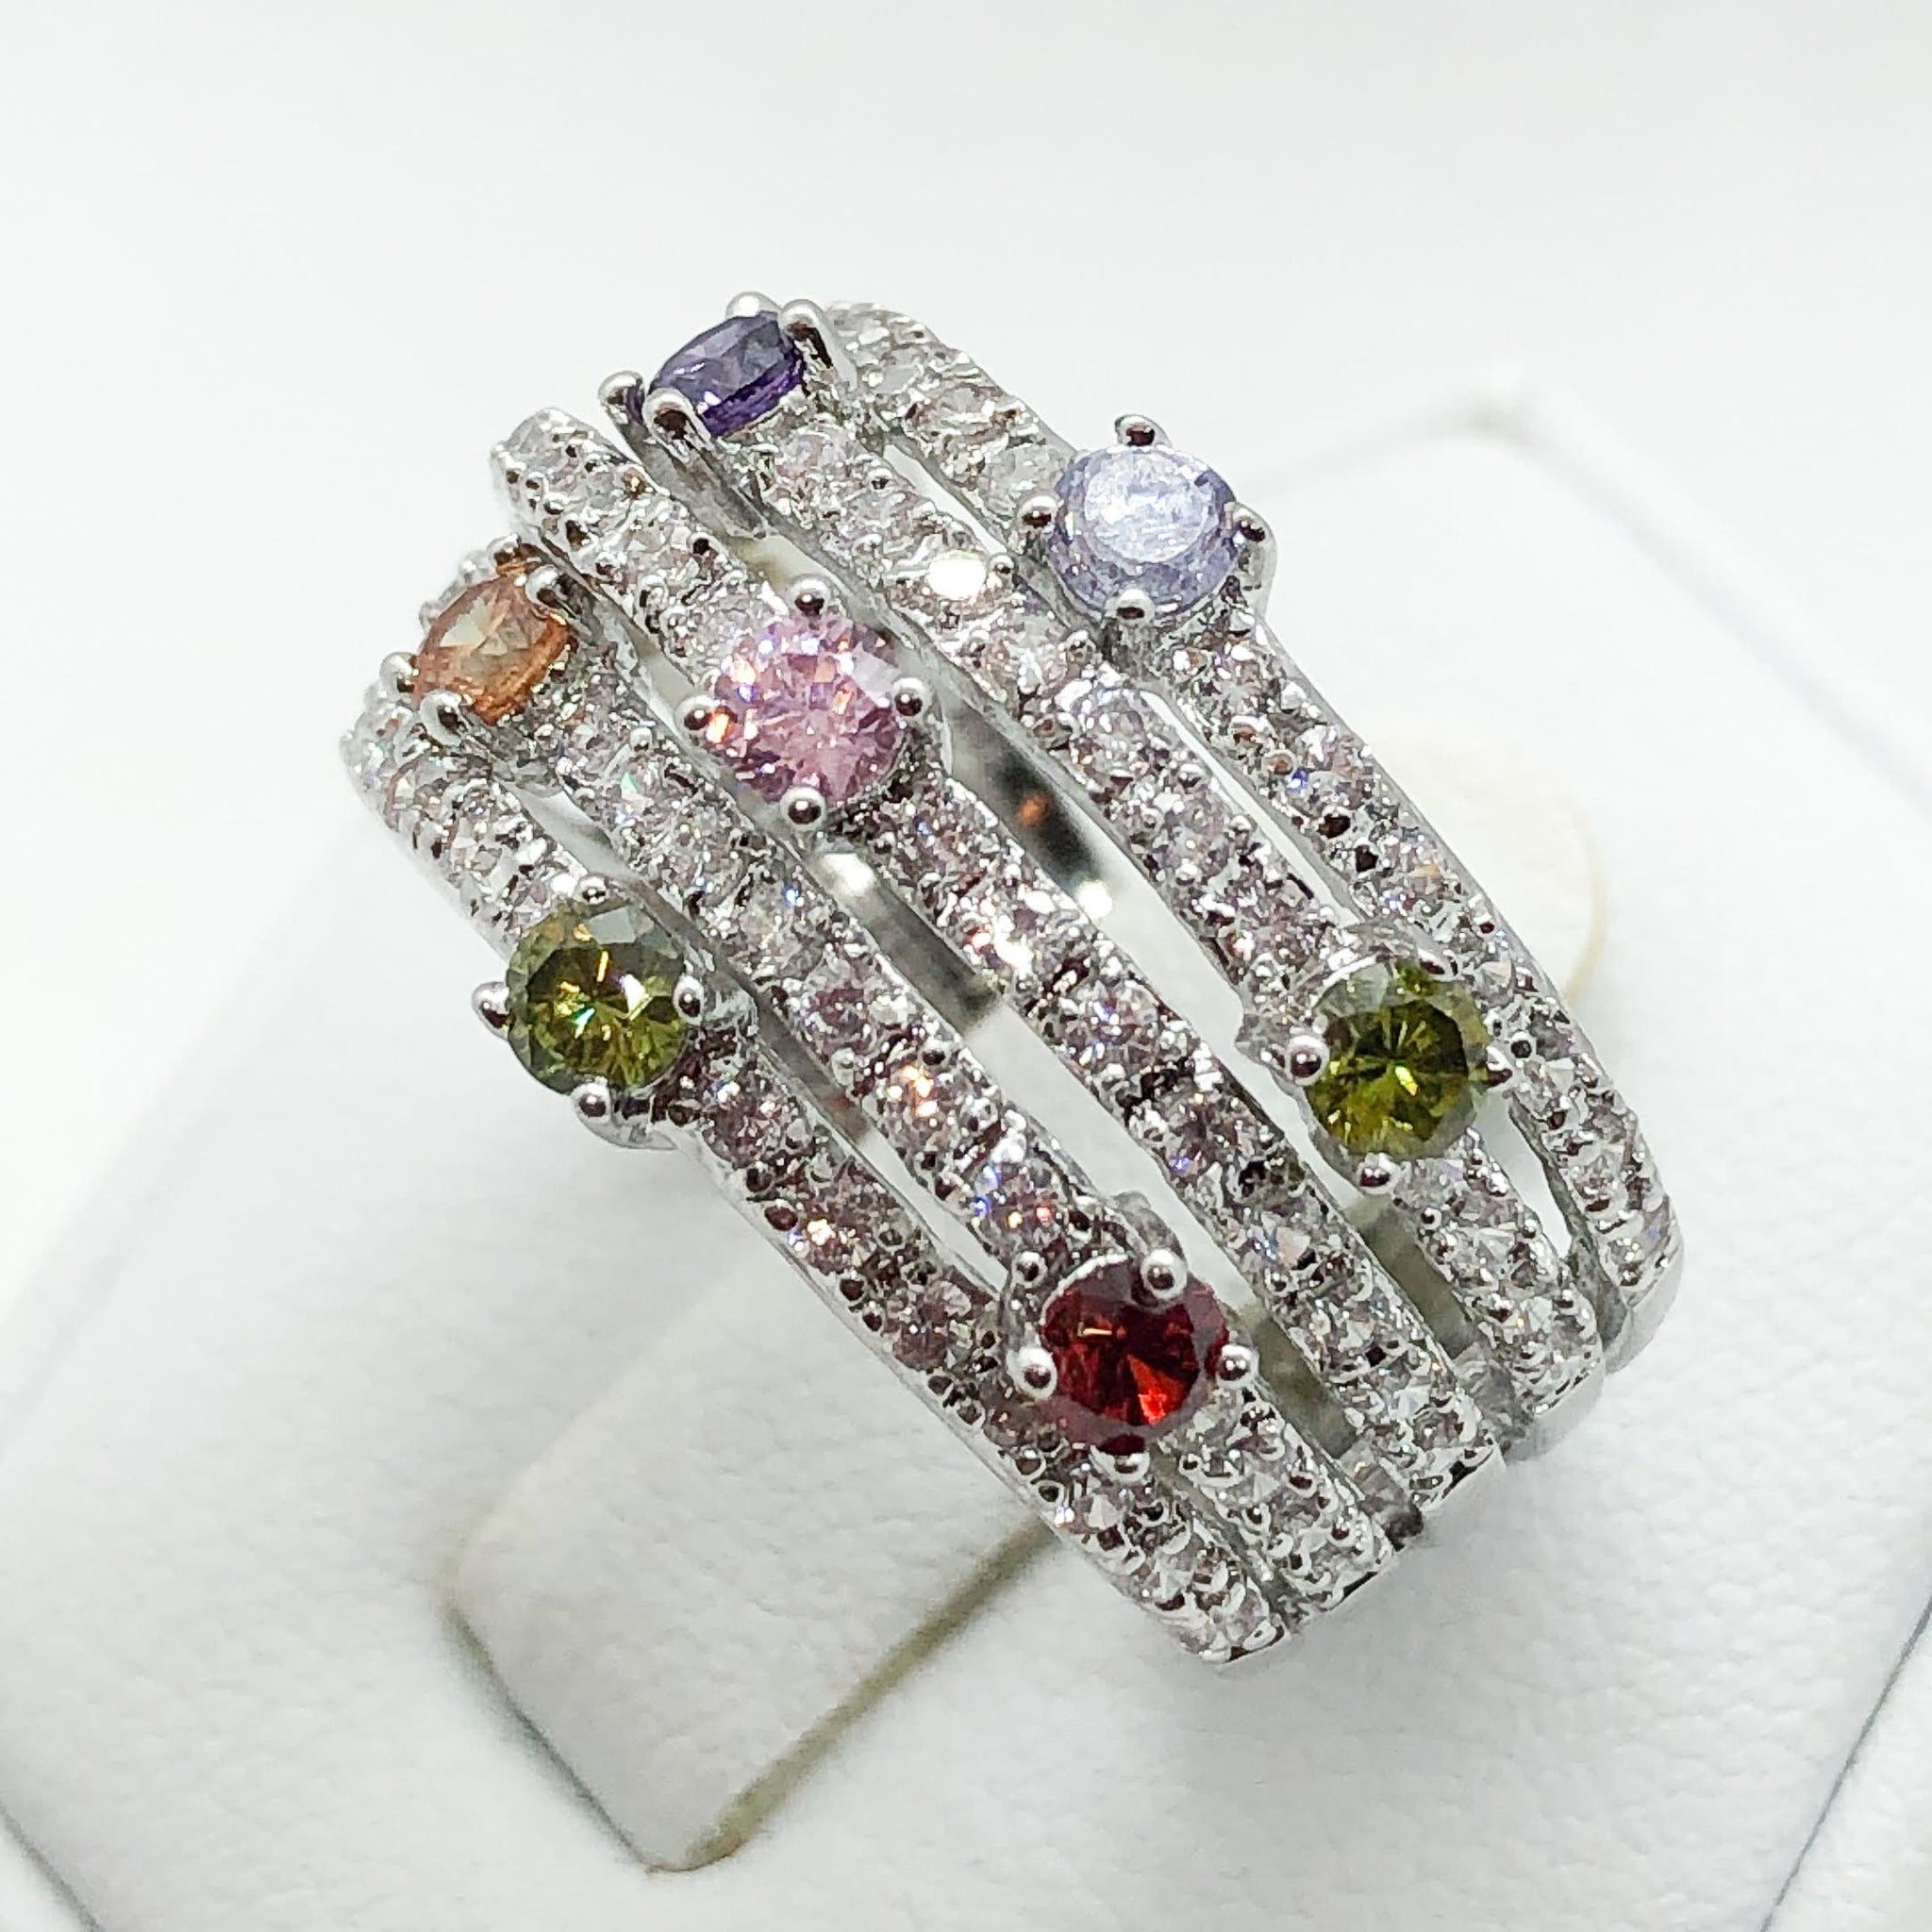 ID:R4858 Women 18K White Gold GF Innovative Fashion Jewelry Color Crystal Gemstones Cocktail Band Ring Anniversary Promise Gift